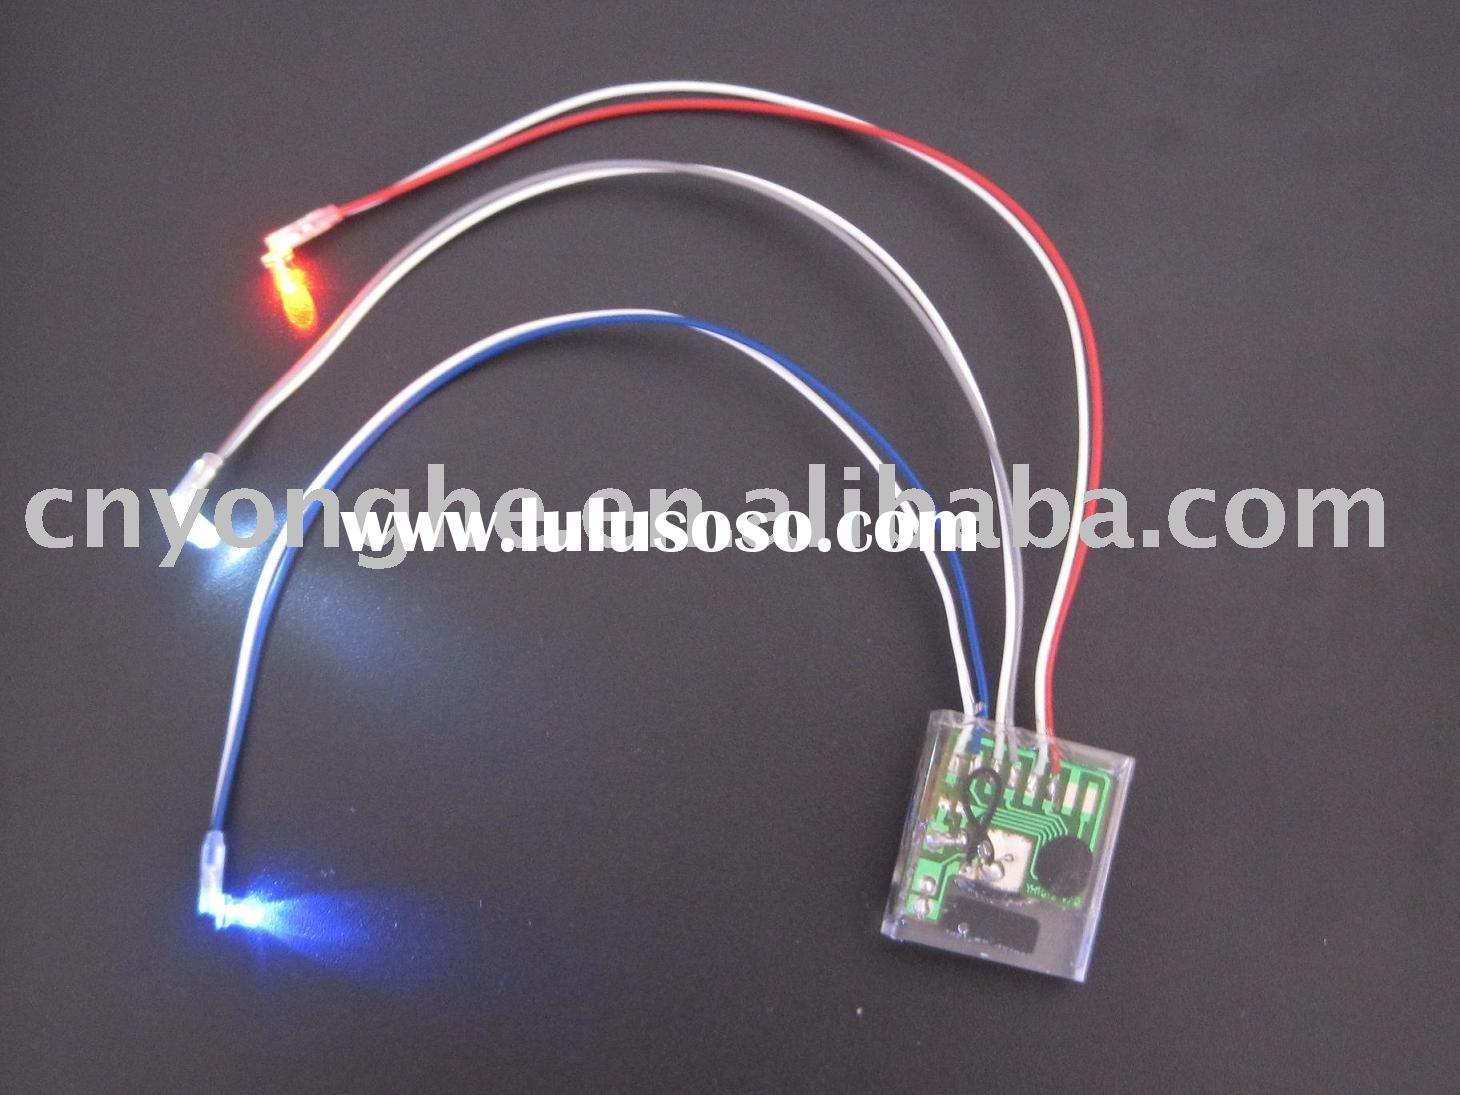 Led Light Shoes Manufacturers In Page 1 Blinking Leds Circuit